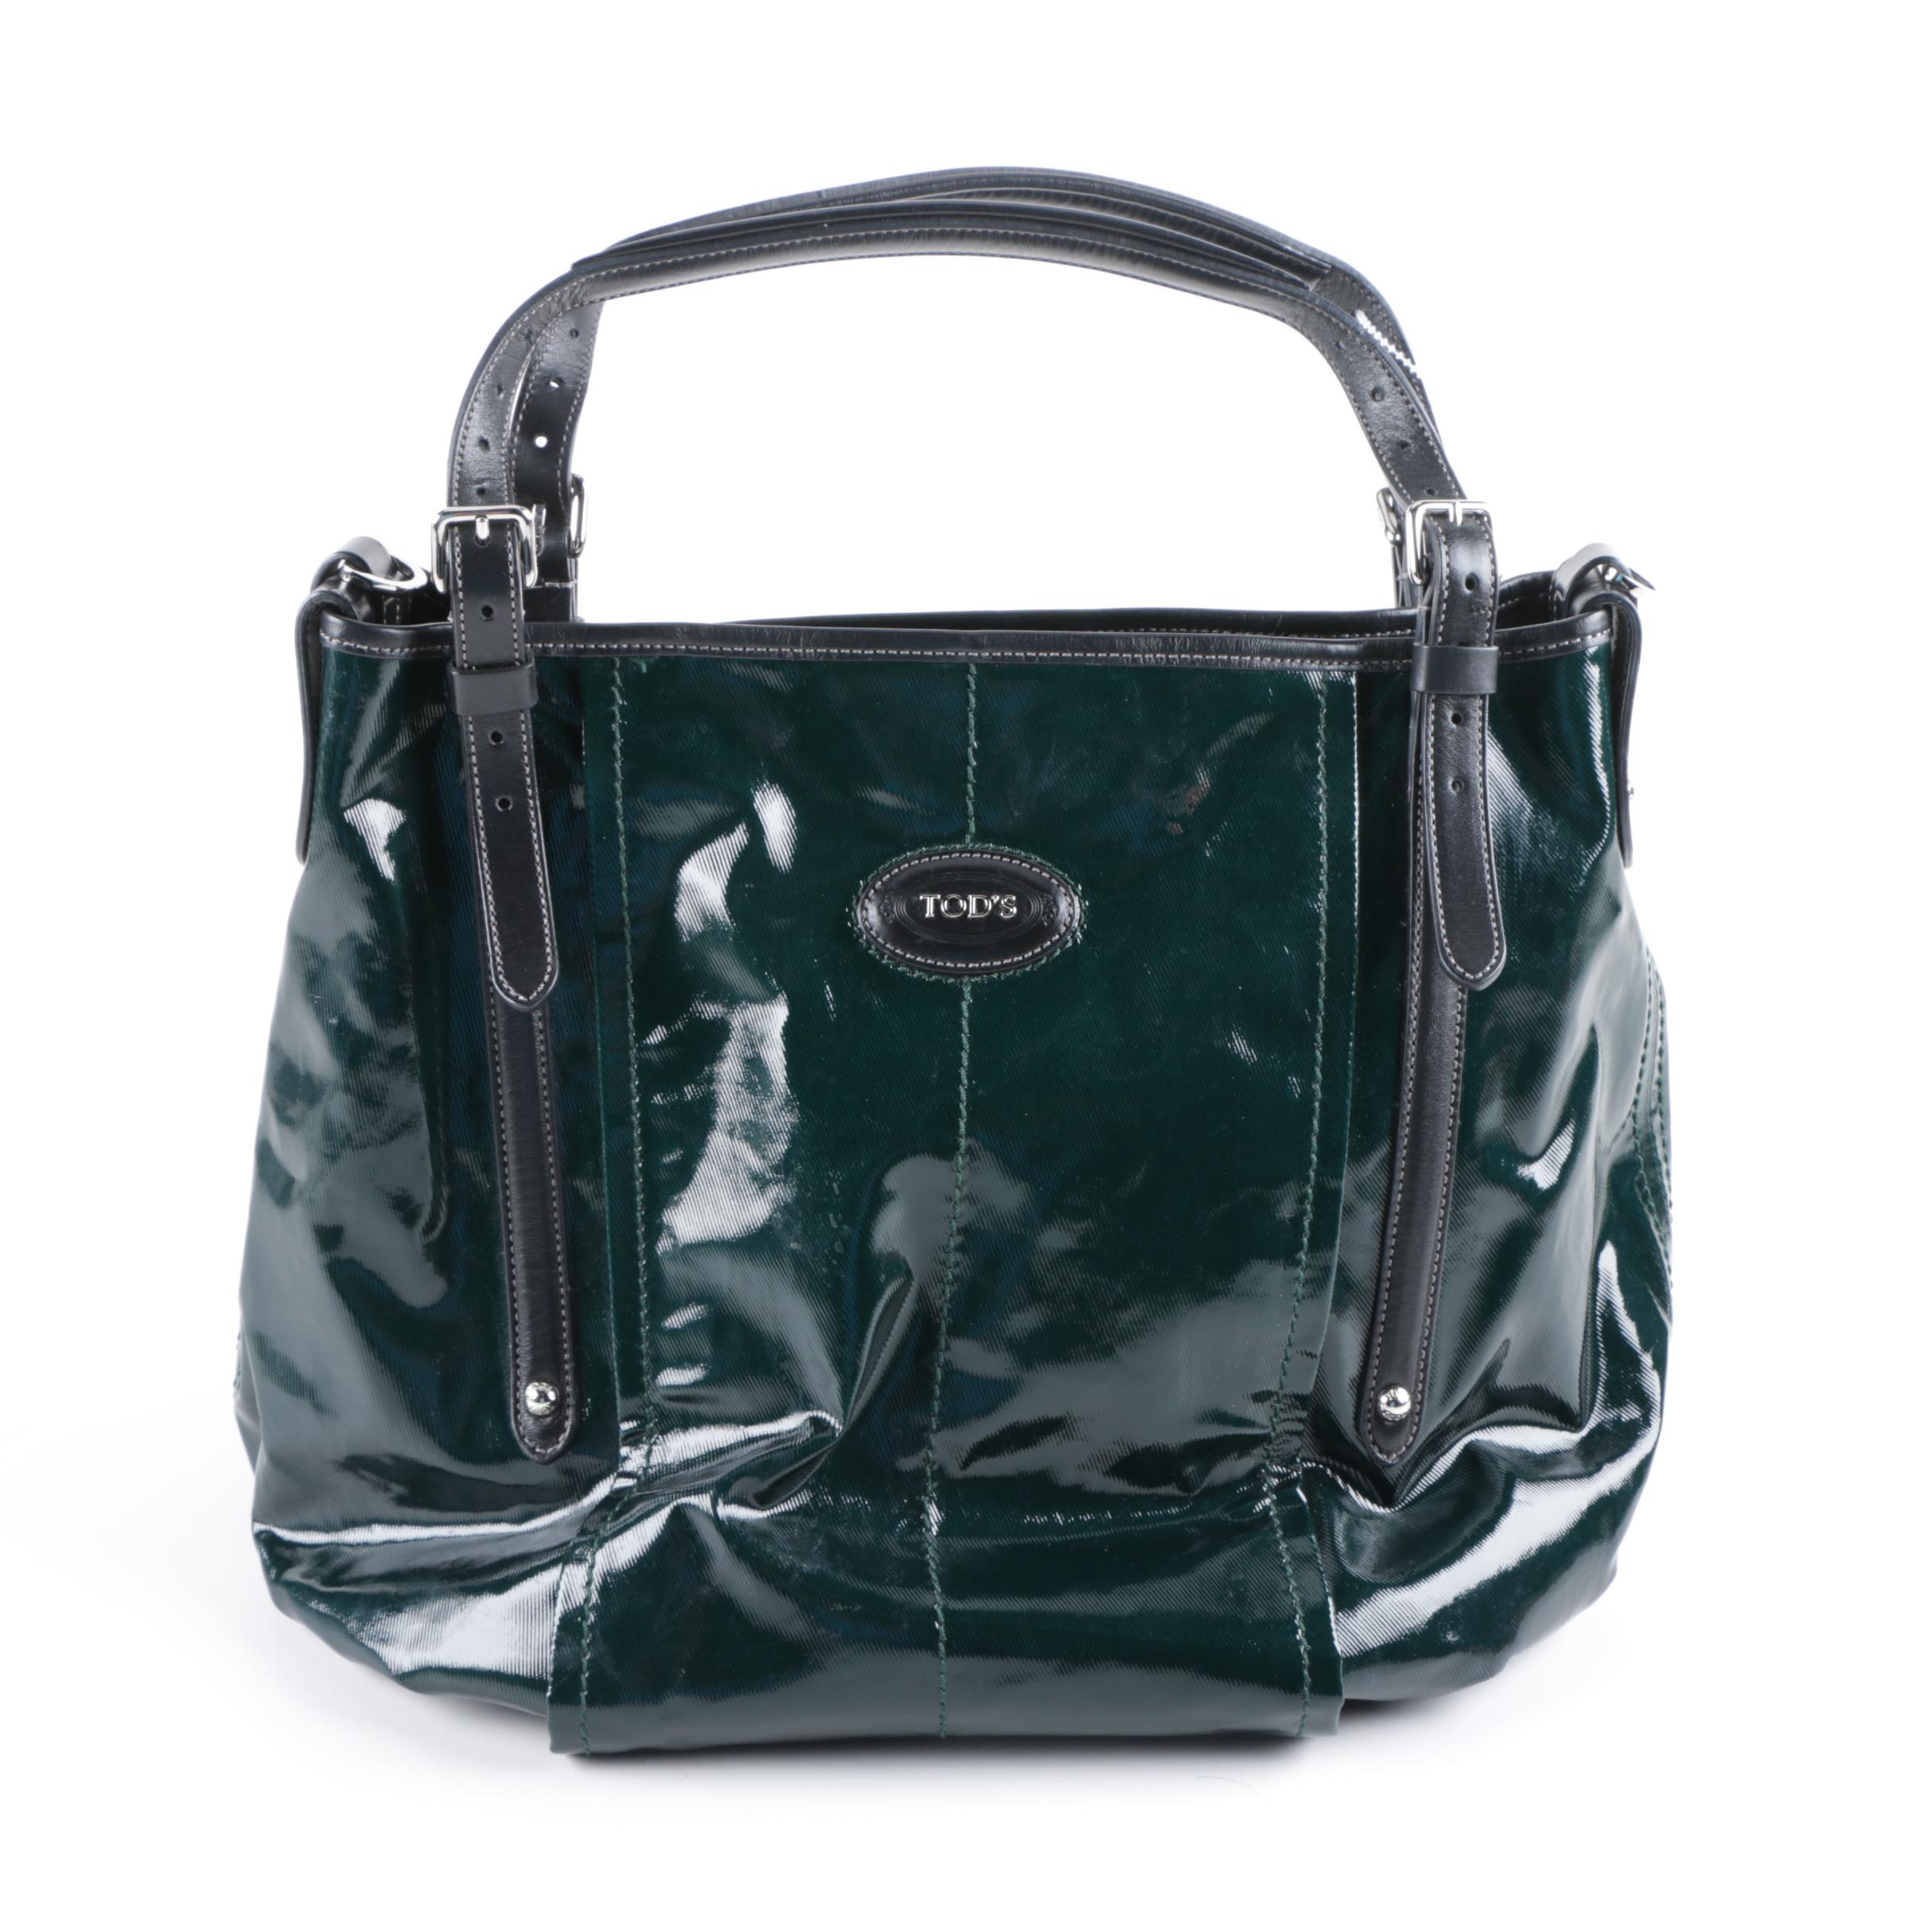 Tod's Green Coated Canvas and Black Leather Handbag